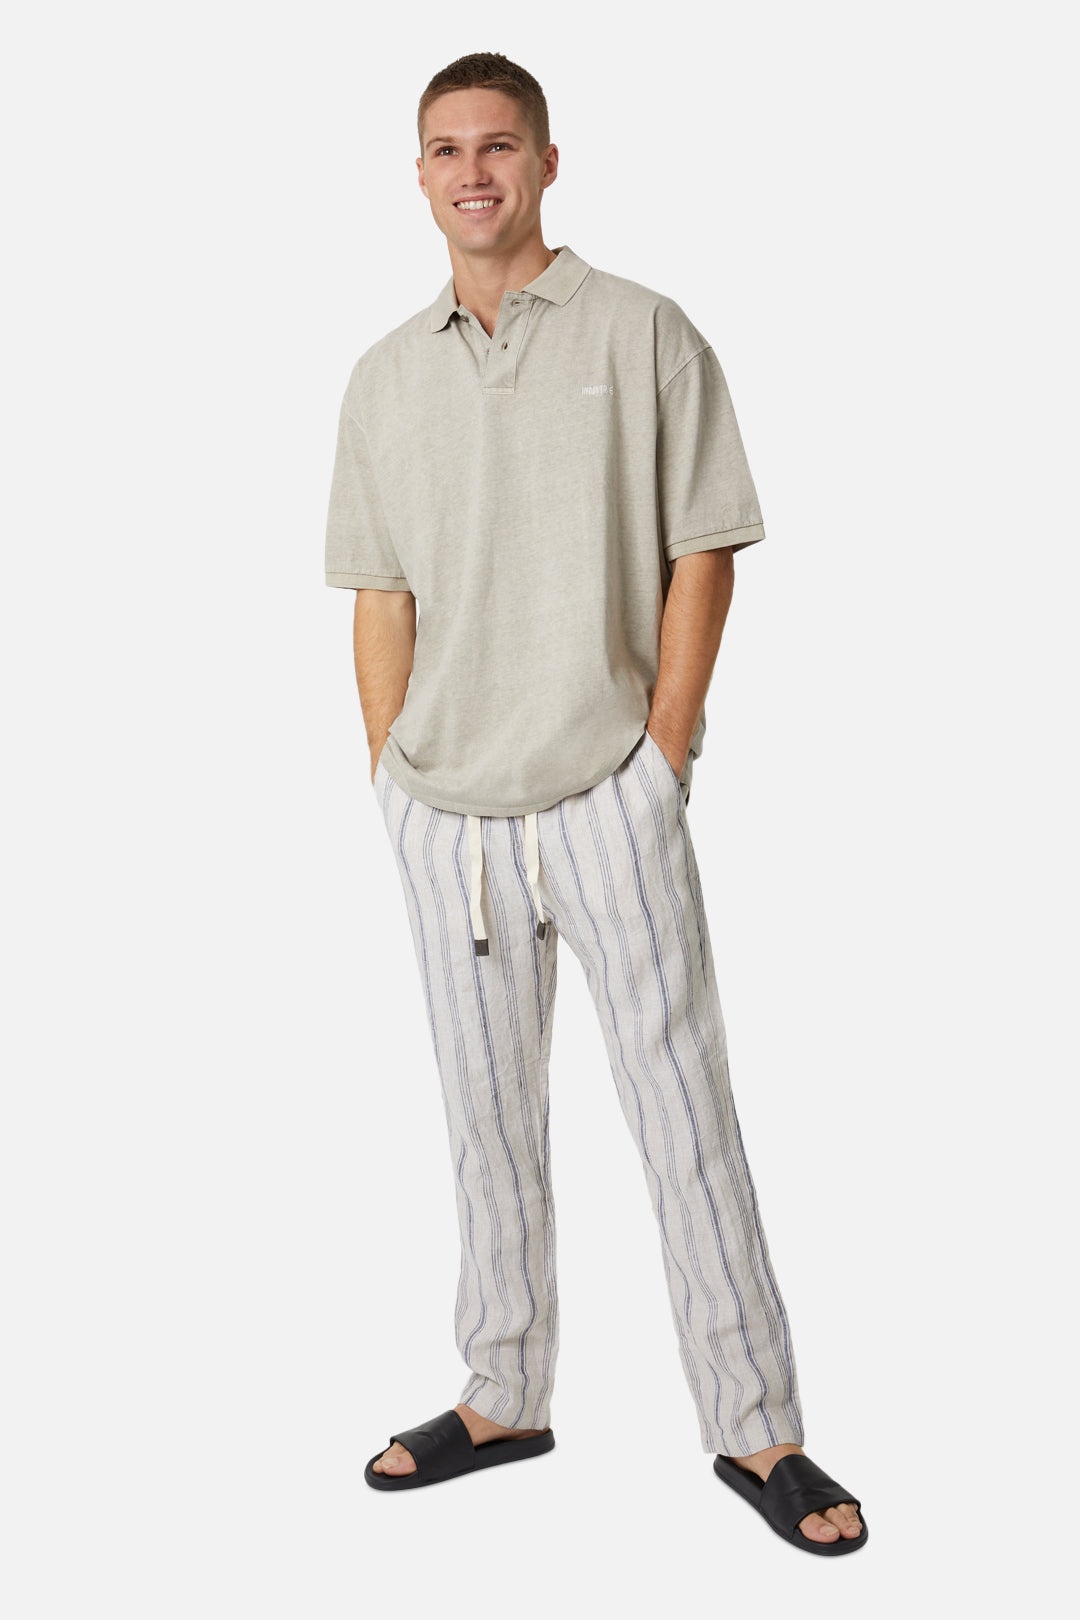 The Simi Linen Pant - Wheat Navy